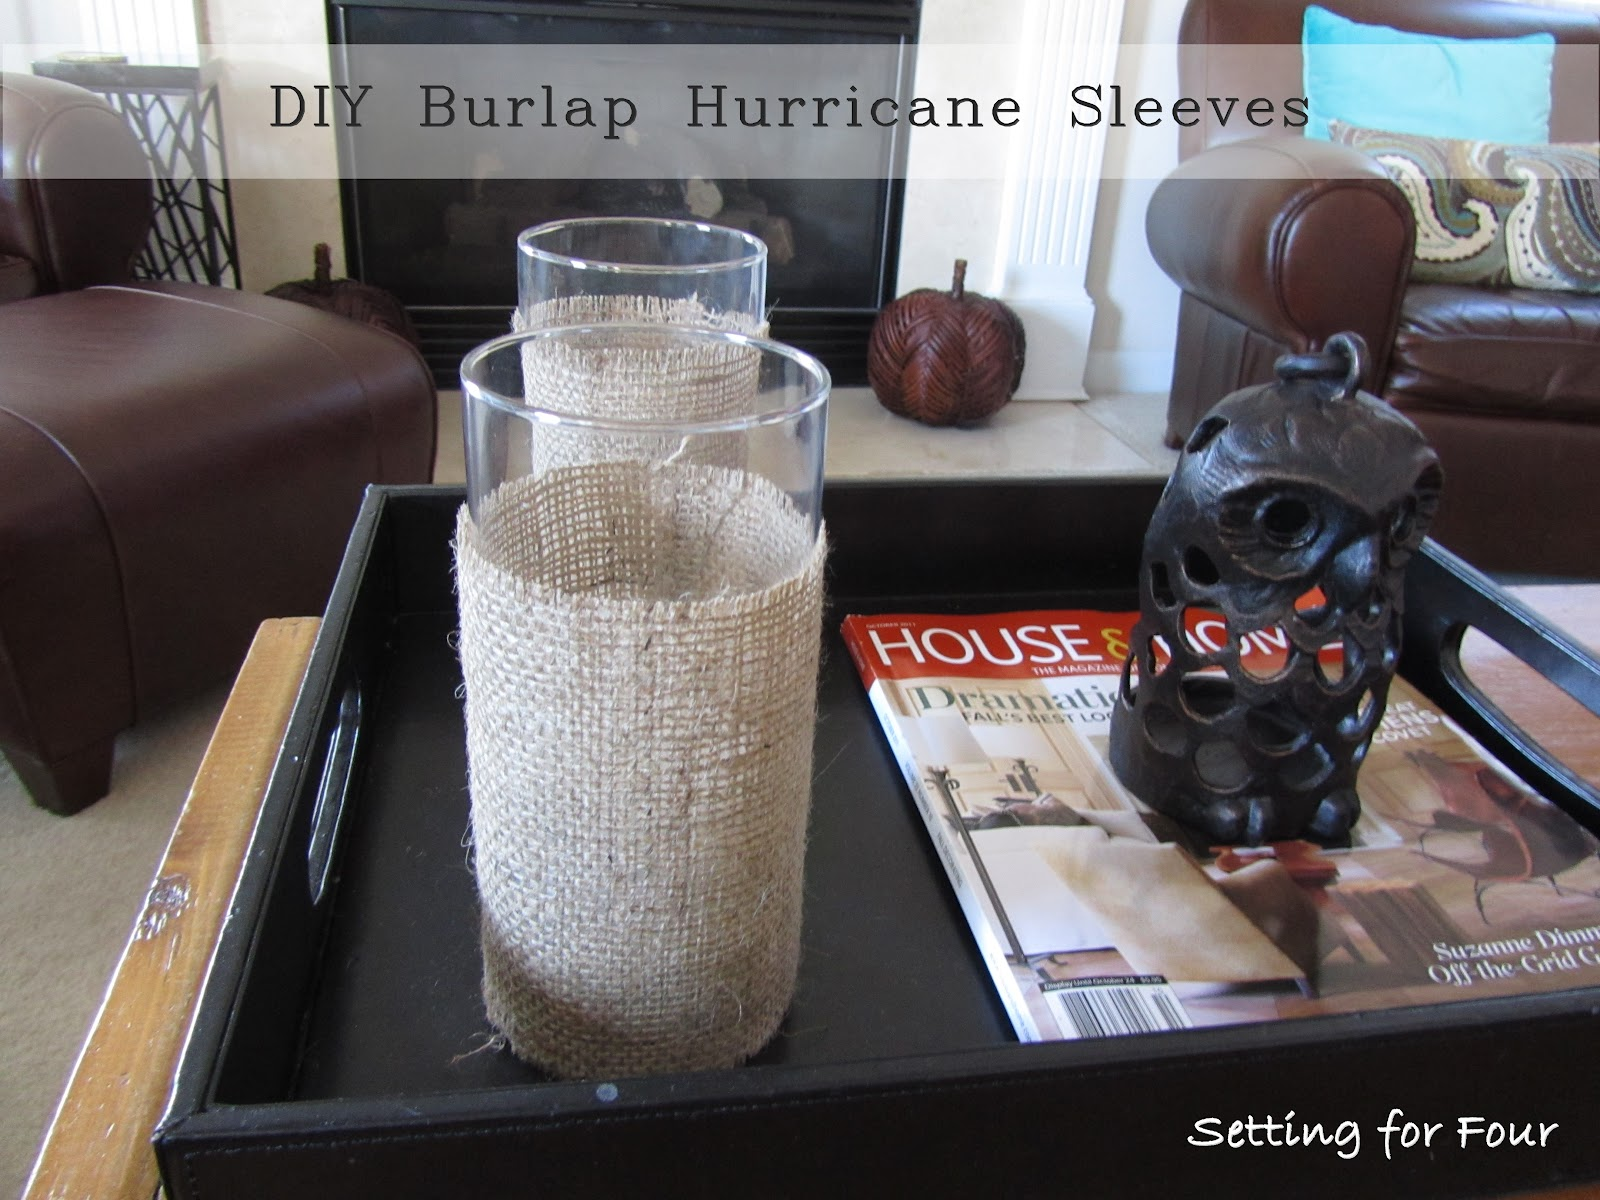 Quick and easy diy burlap hurricane sleeve setting for four